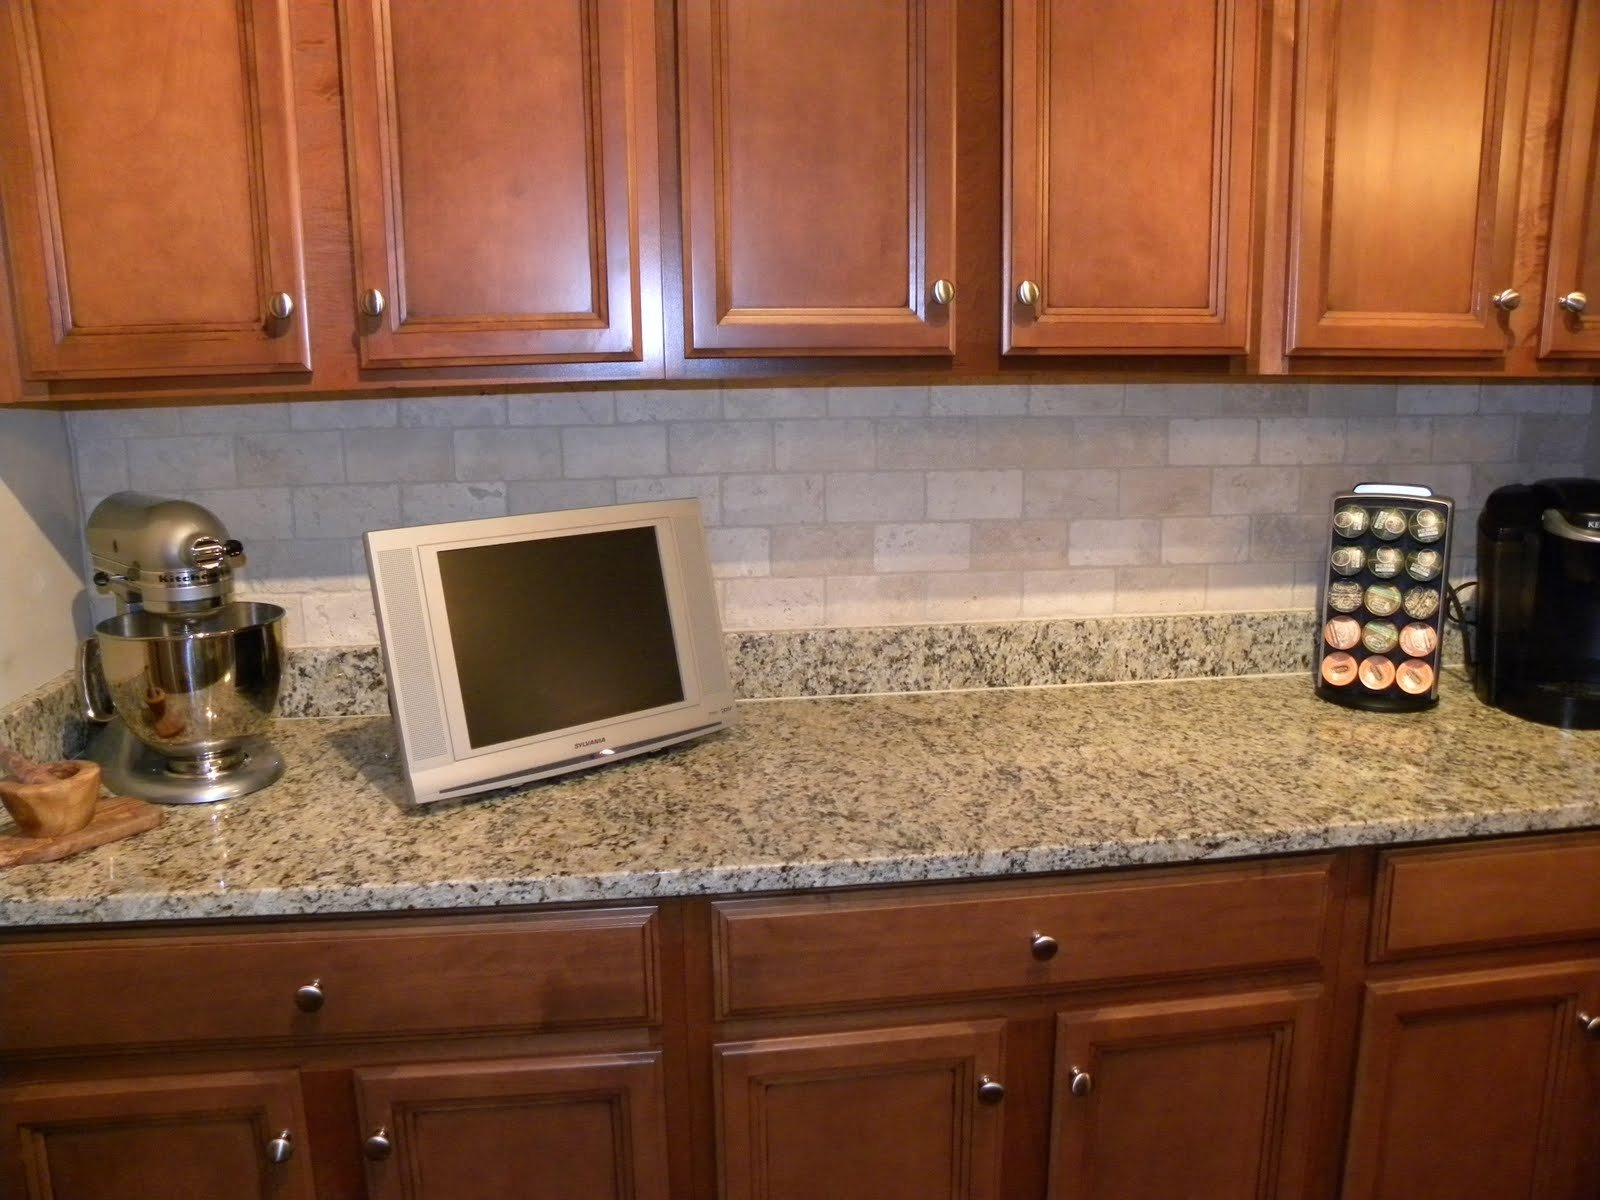 10 Stunning Backsplash Ideas For Kitchens Inexpensive kitchen a captivating kitchen backsplash ideas diy with marble top 1 2021